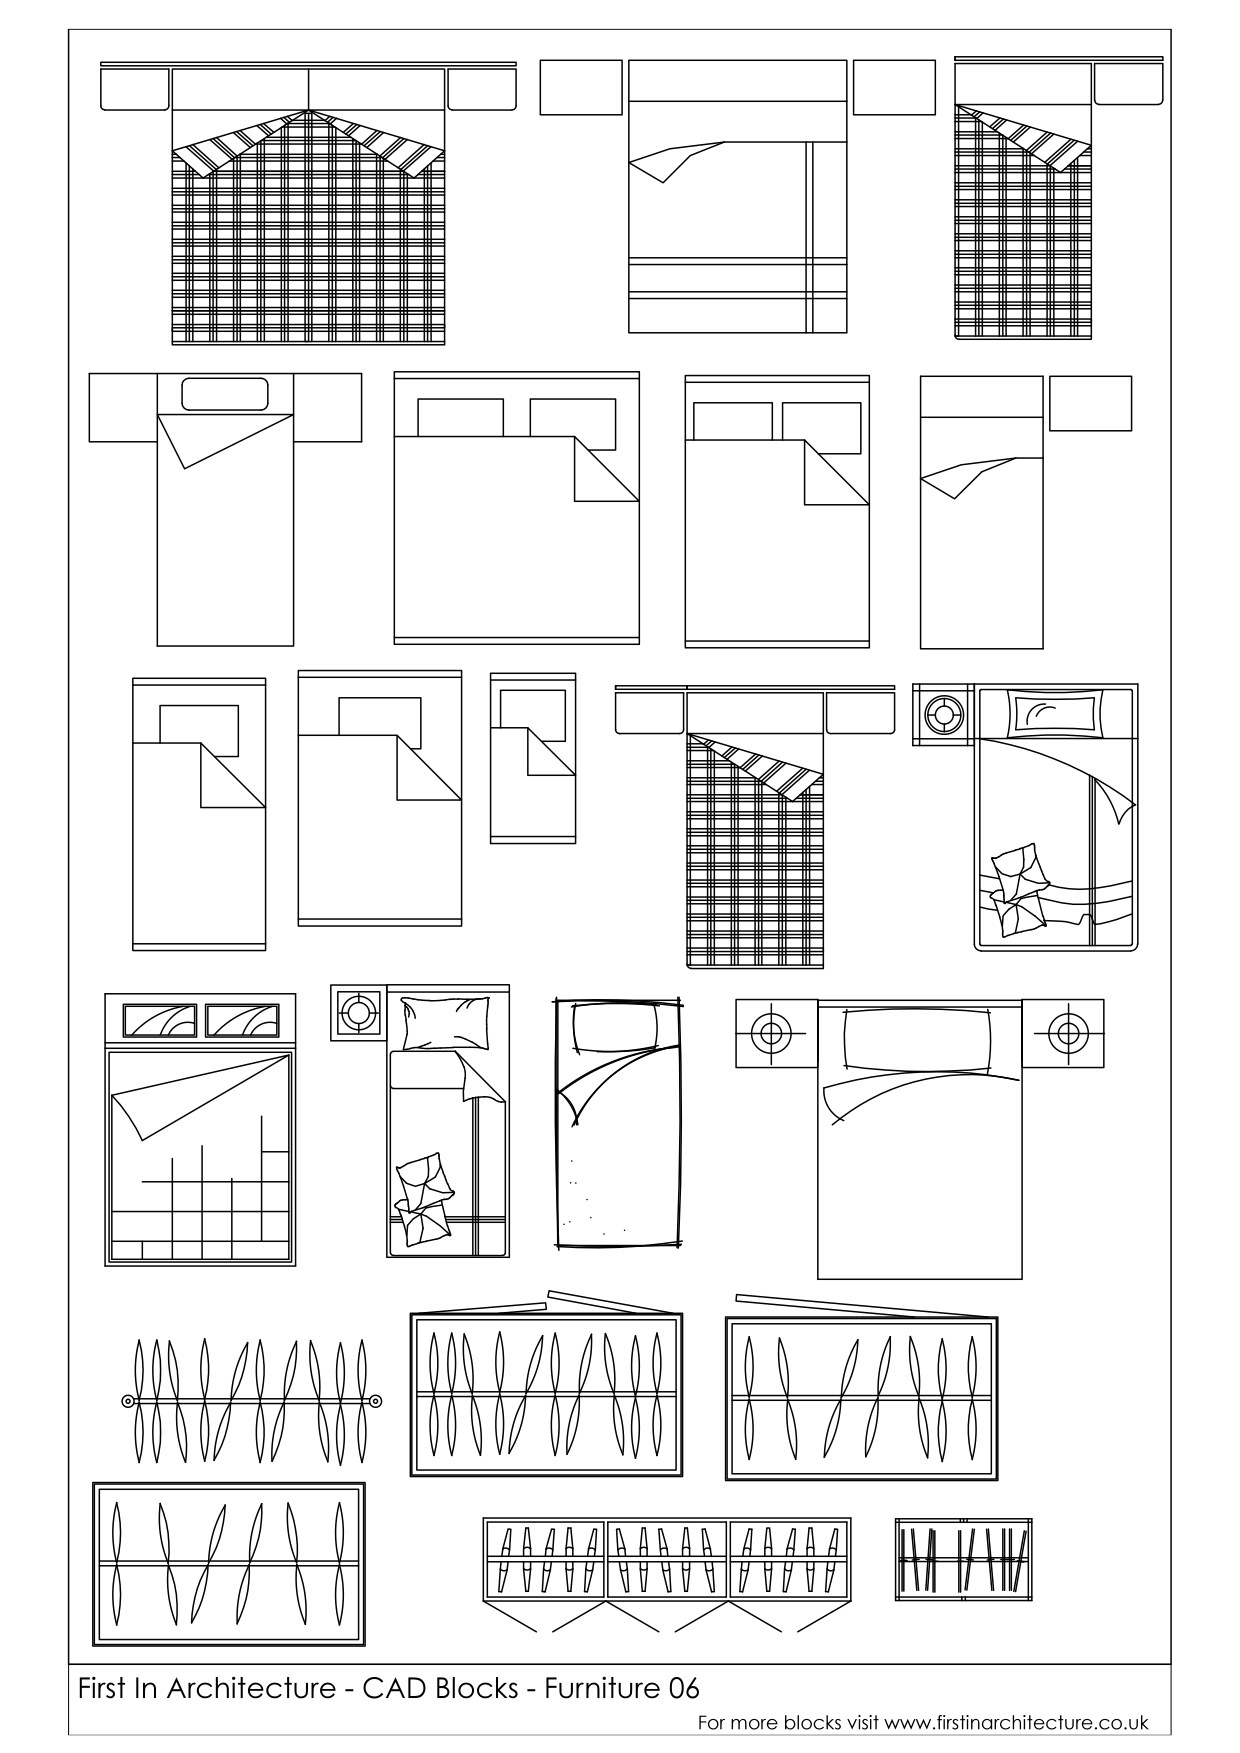 Free cad blocks beds and wardrobes first in architecture for Room design cad